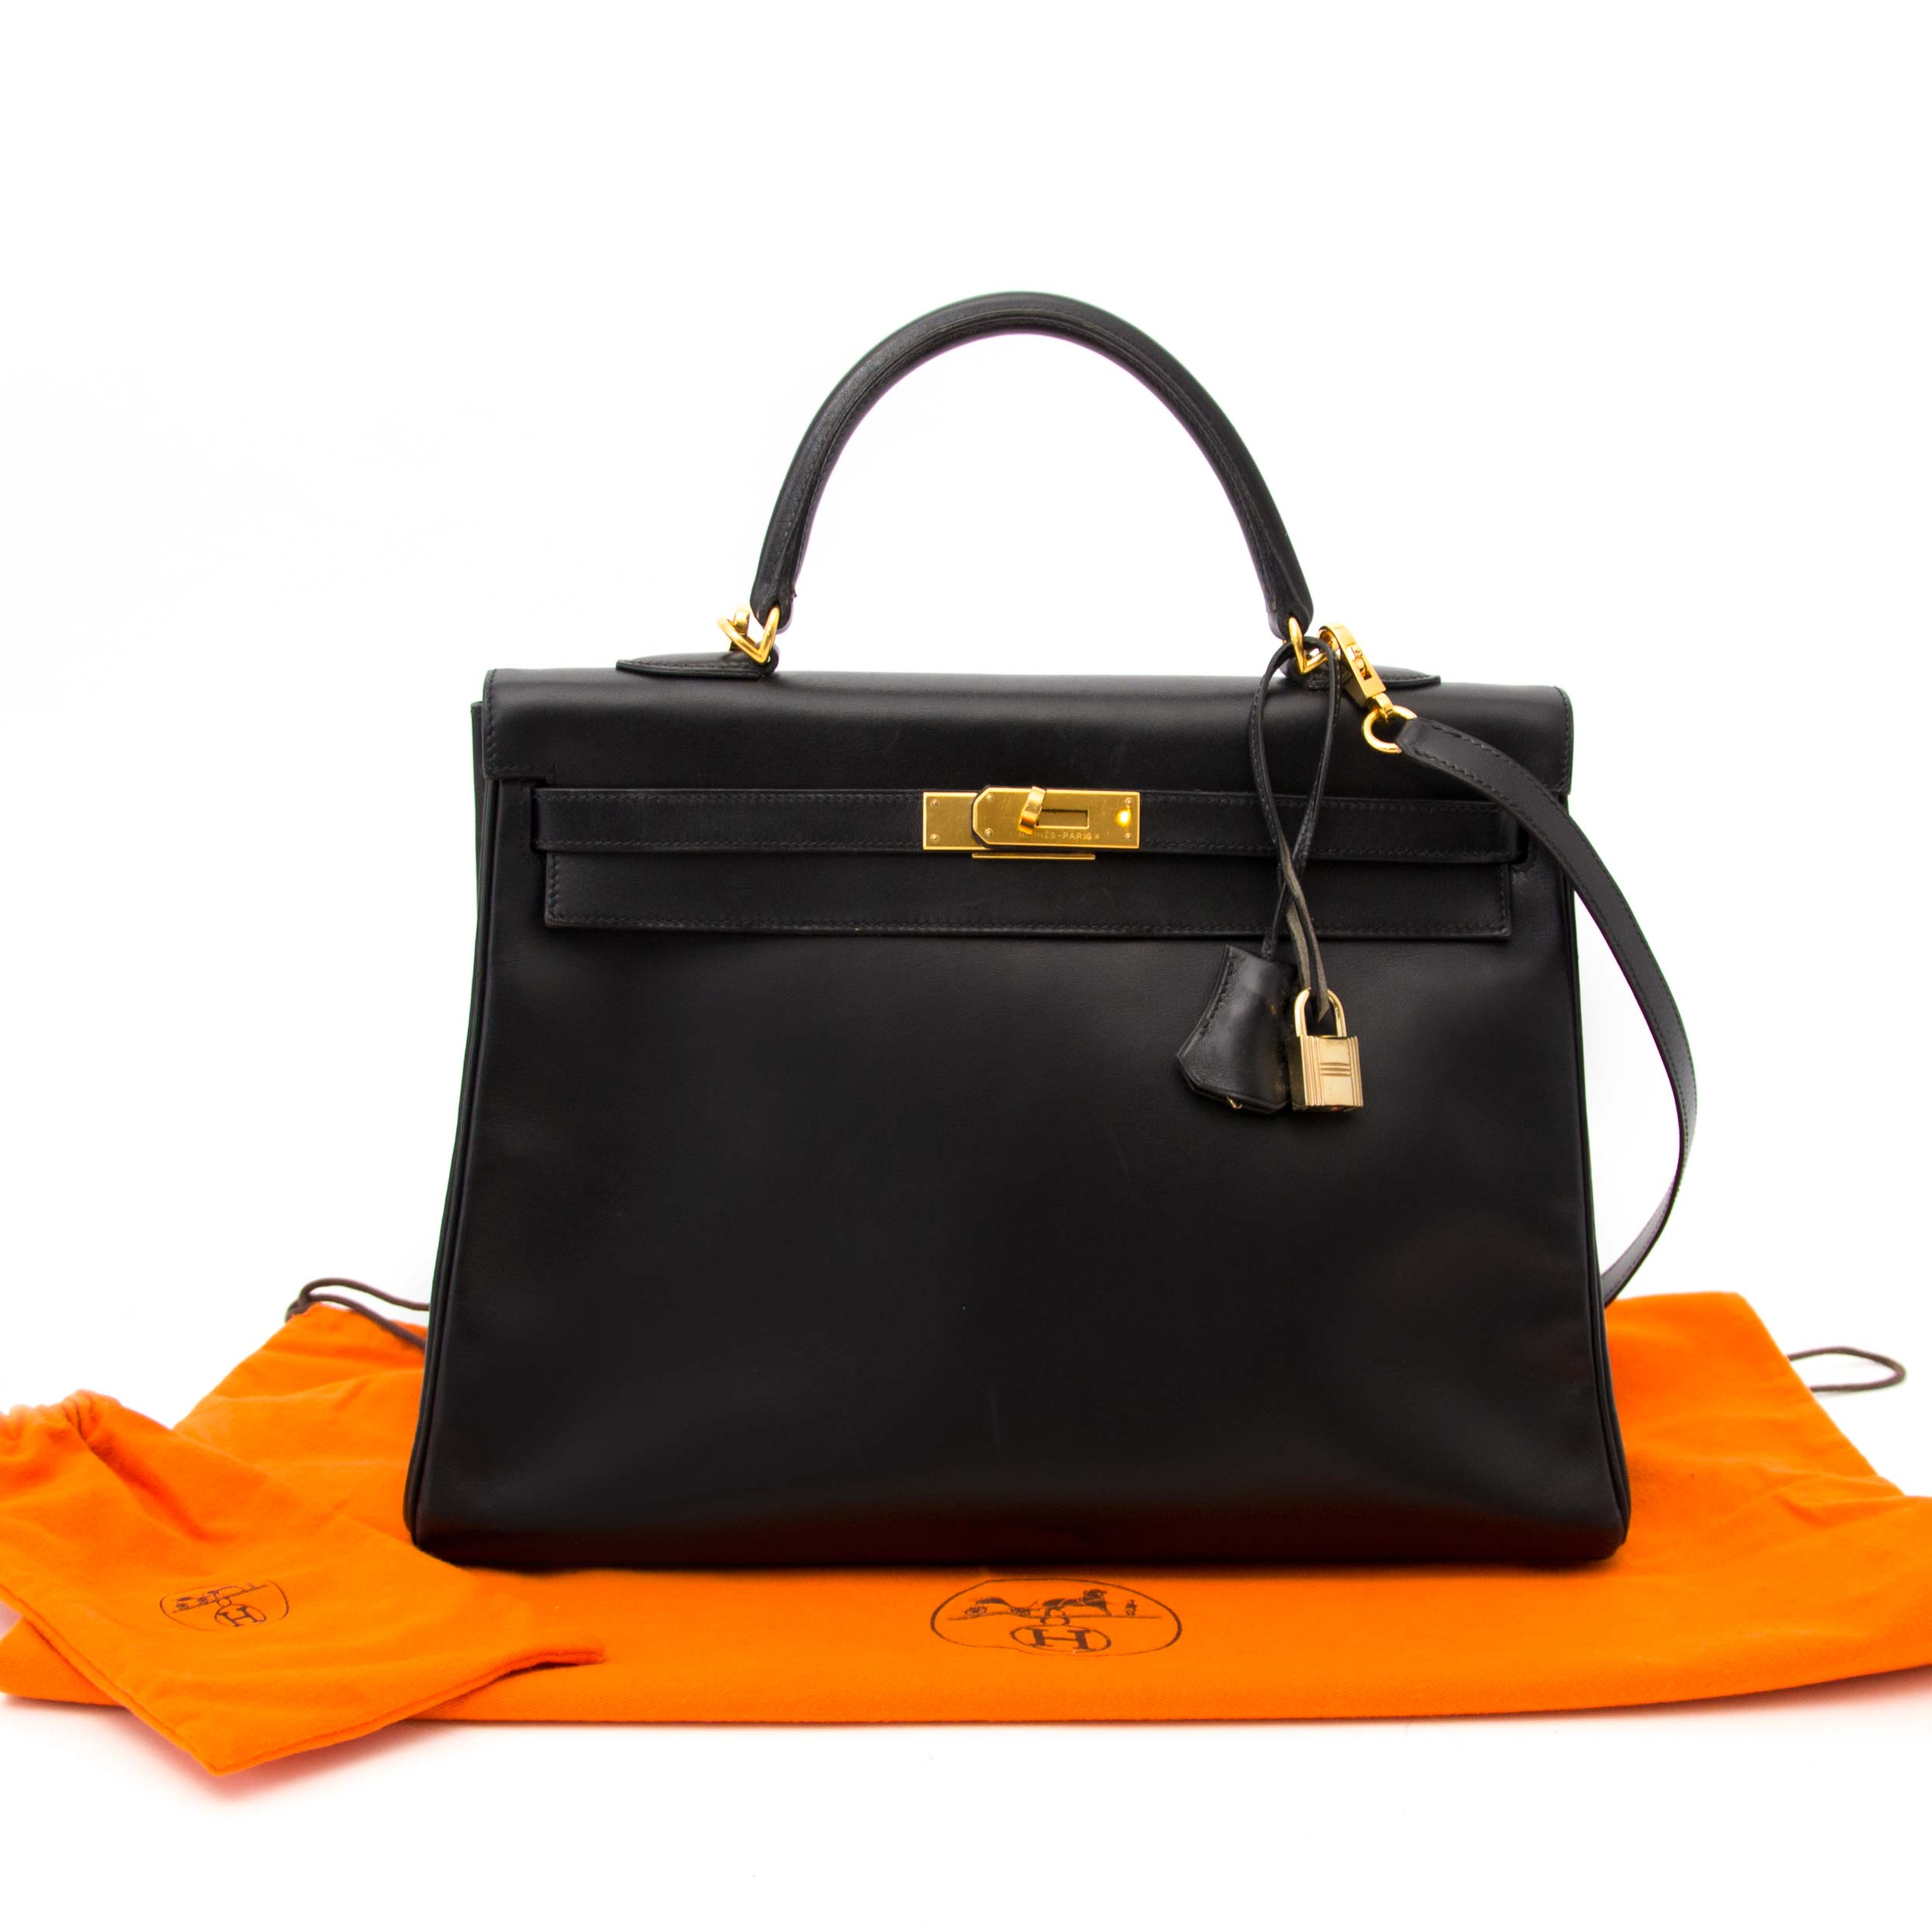 100% authentic hermes kelly 35 boxcalf black now online at labellov.com in antwerp